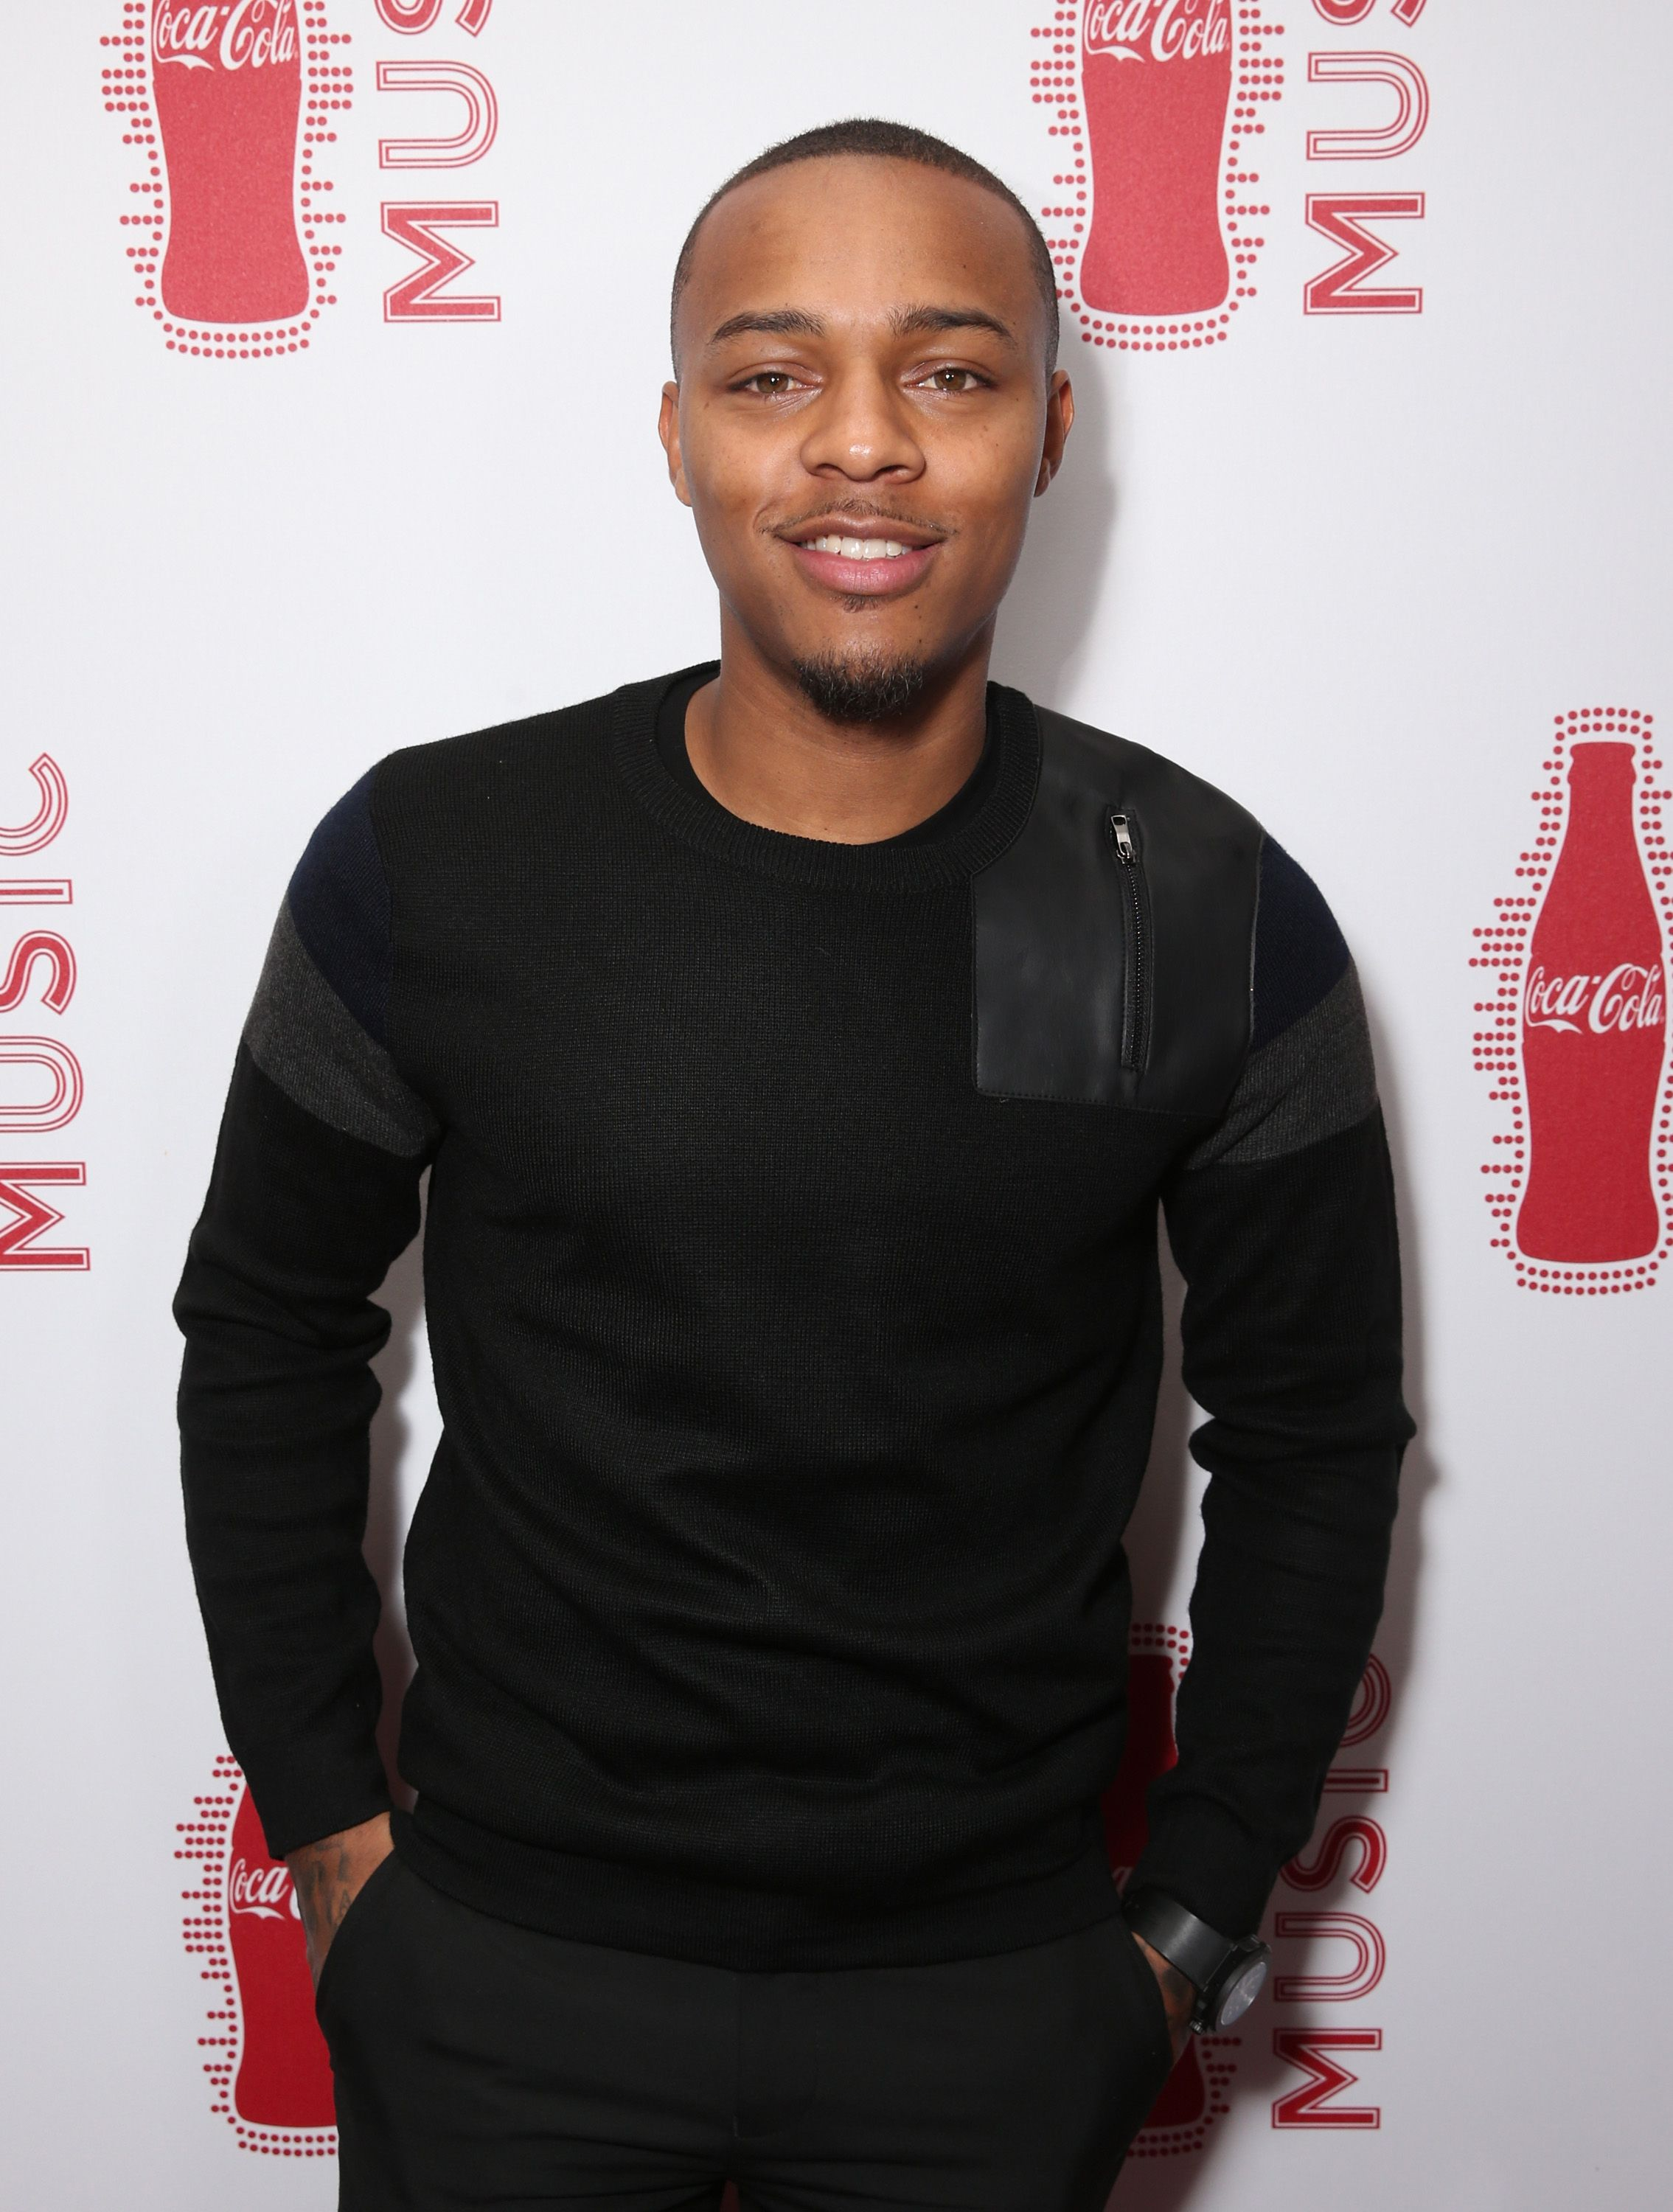 Rapper Bow Wow attending the 2015 American Music Awards pre-party in Los Angeles. | Photo: Getty Images.